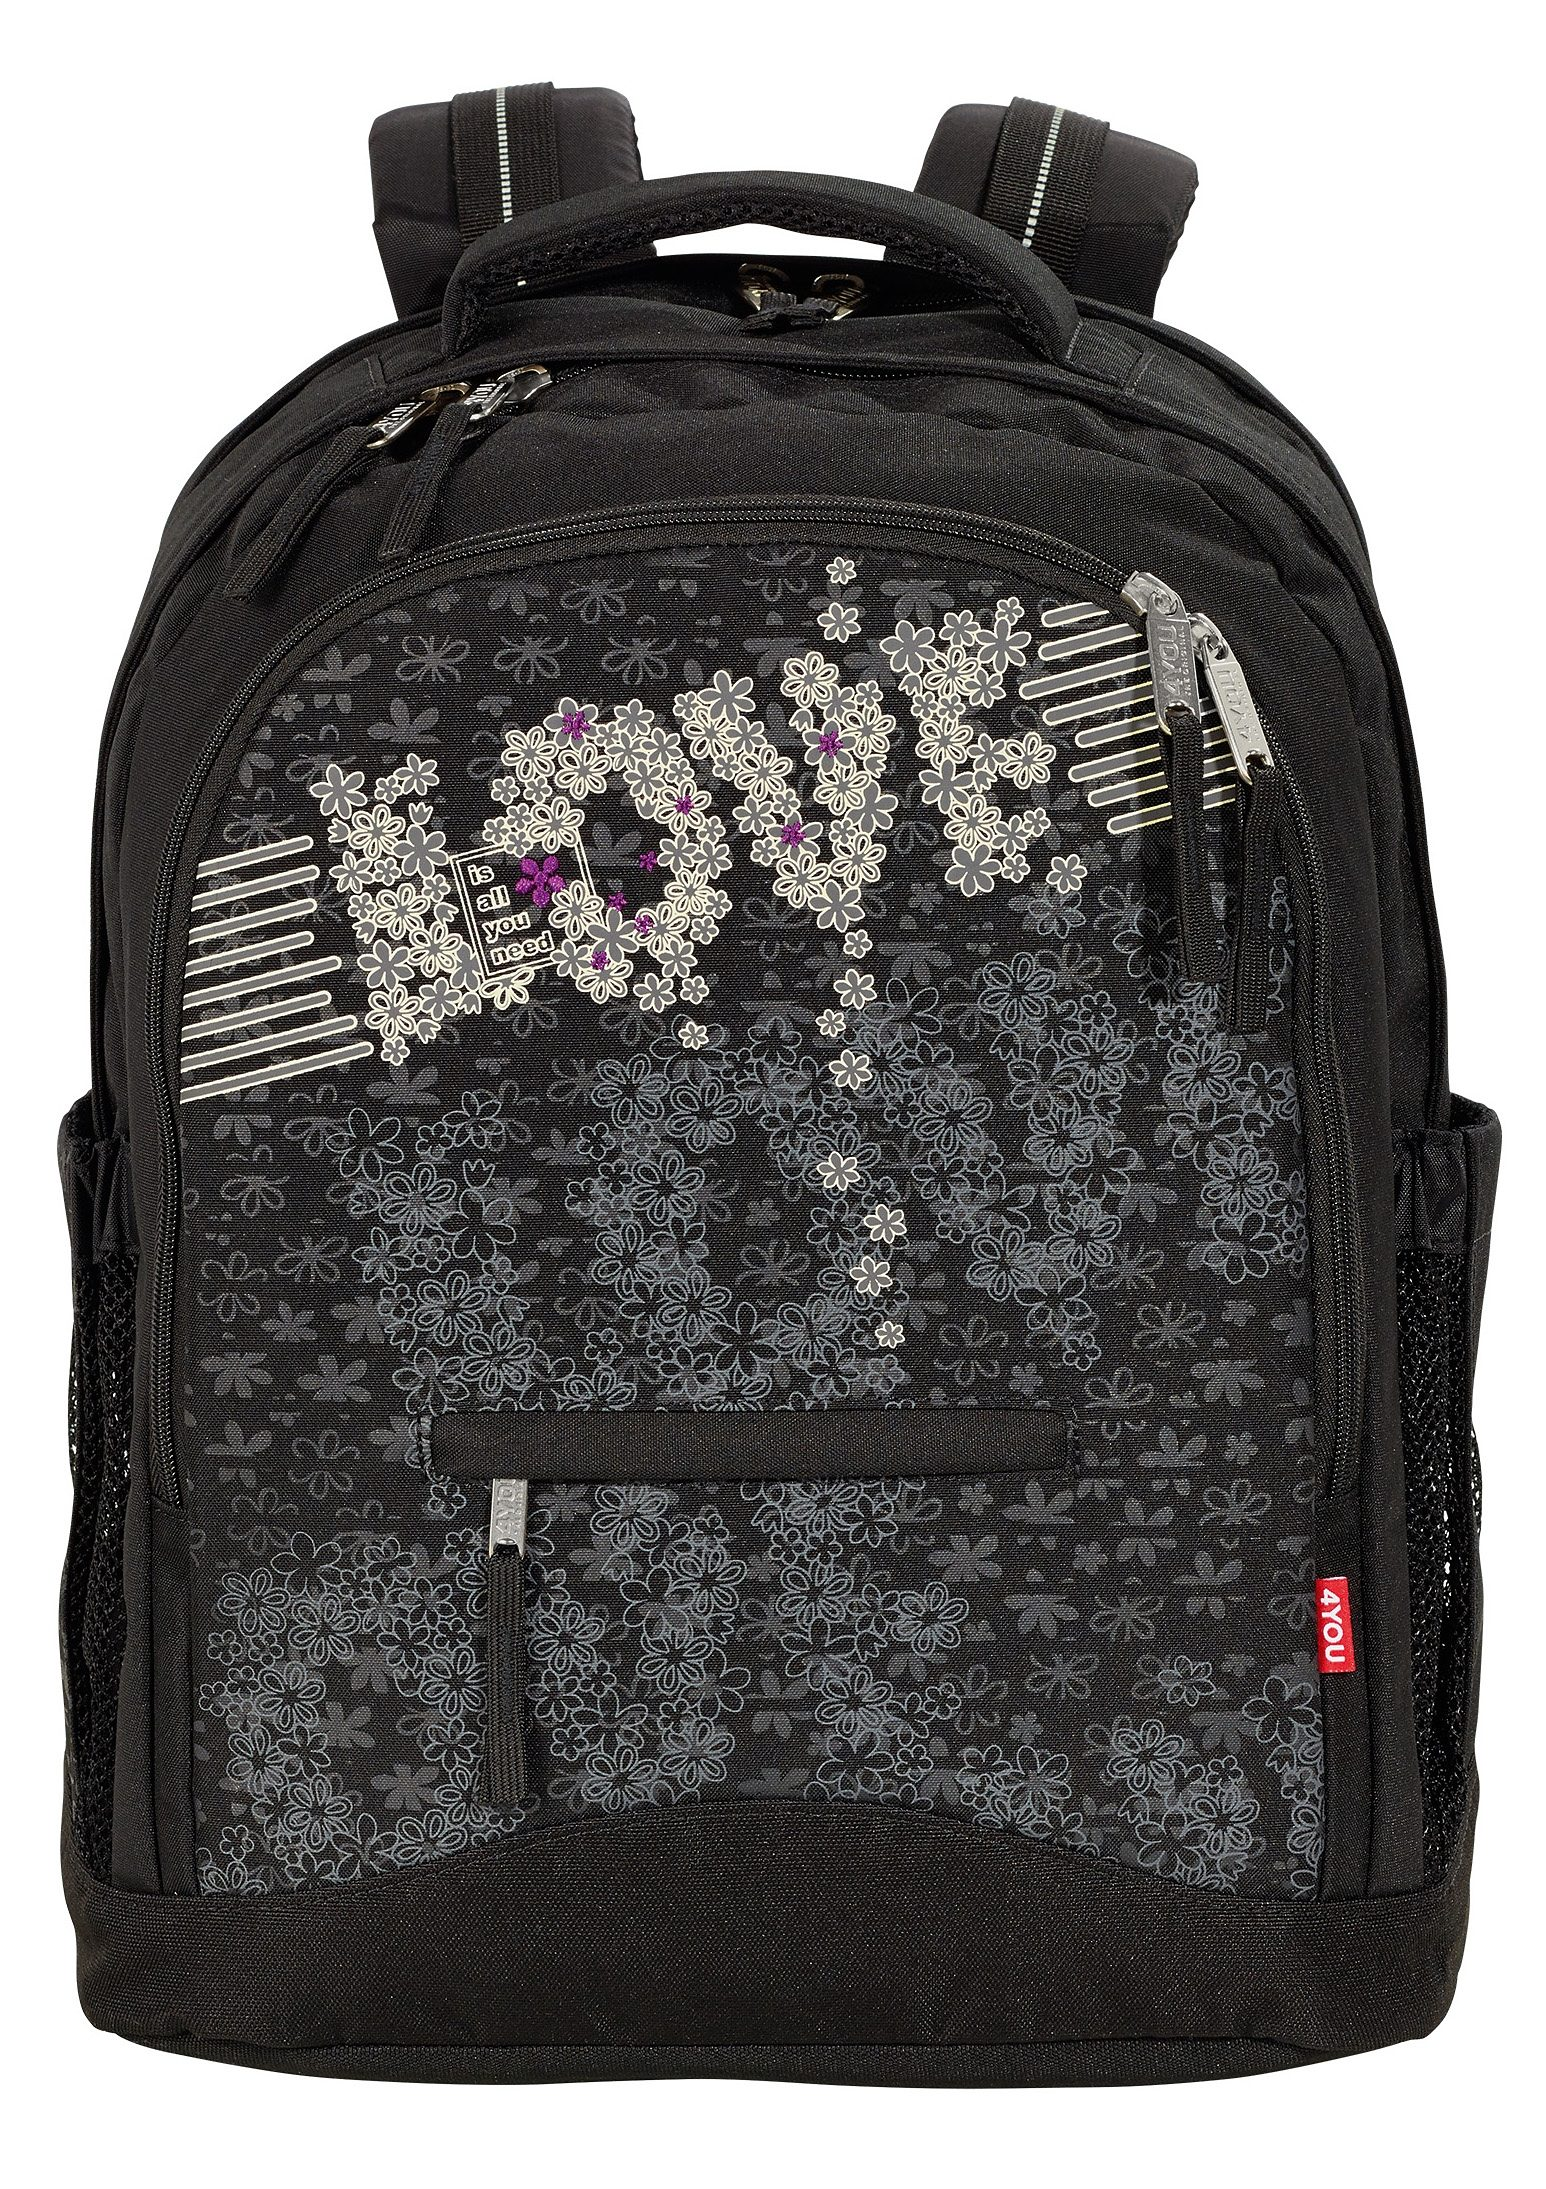 4YOU Schulrucksack, »Rucksack Compact - Love Is All«